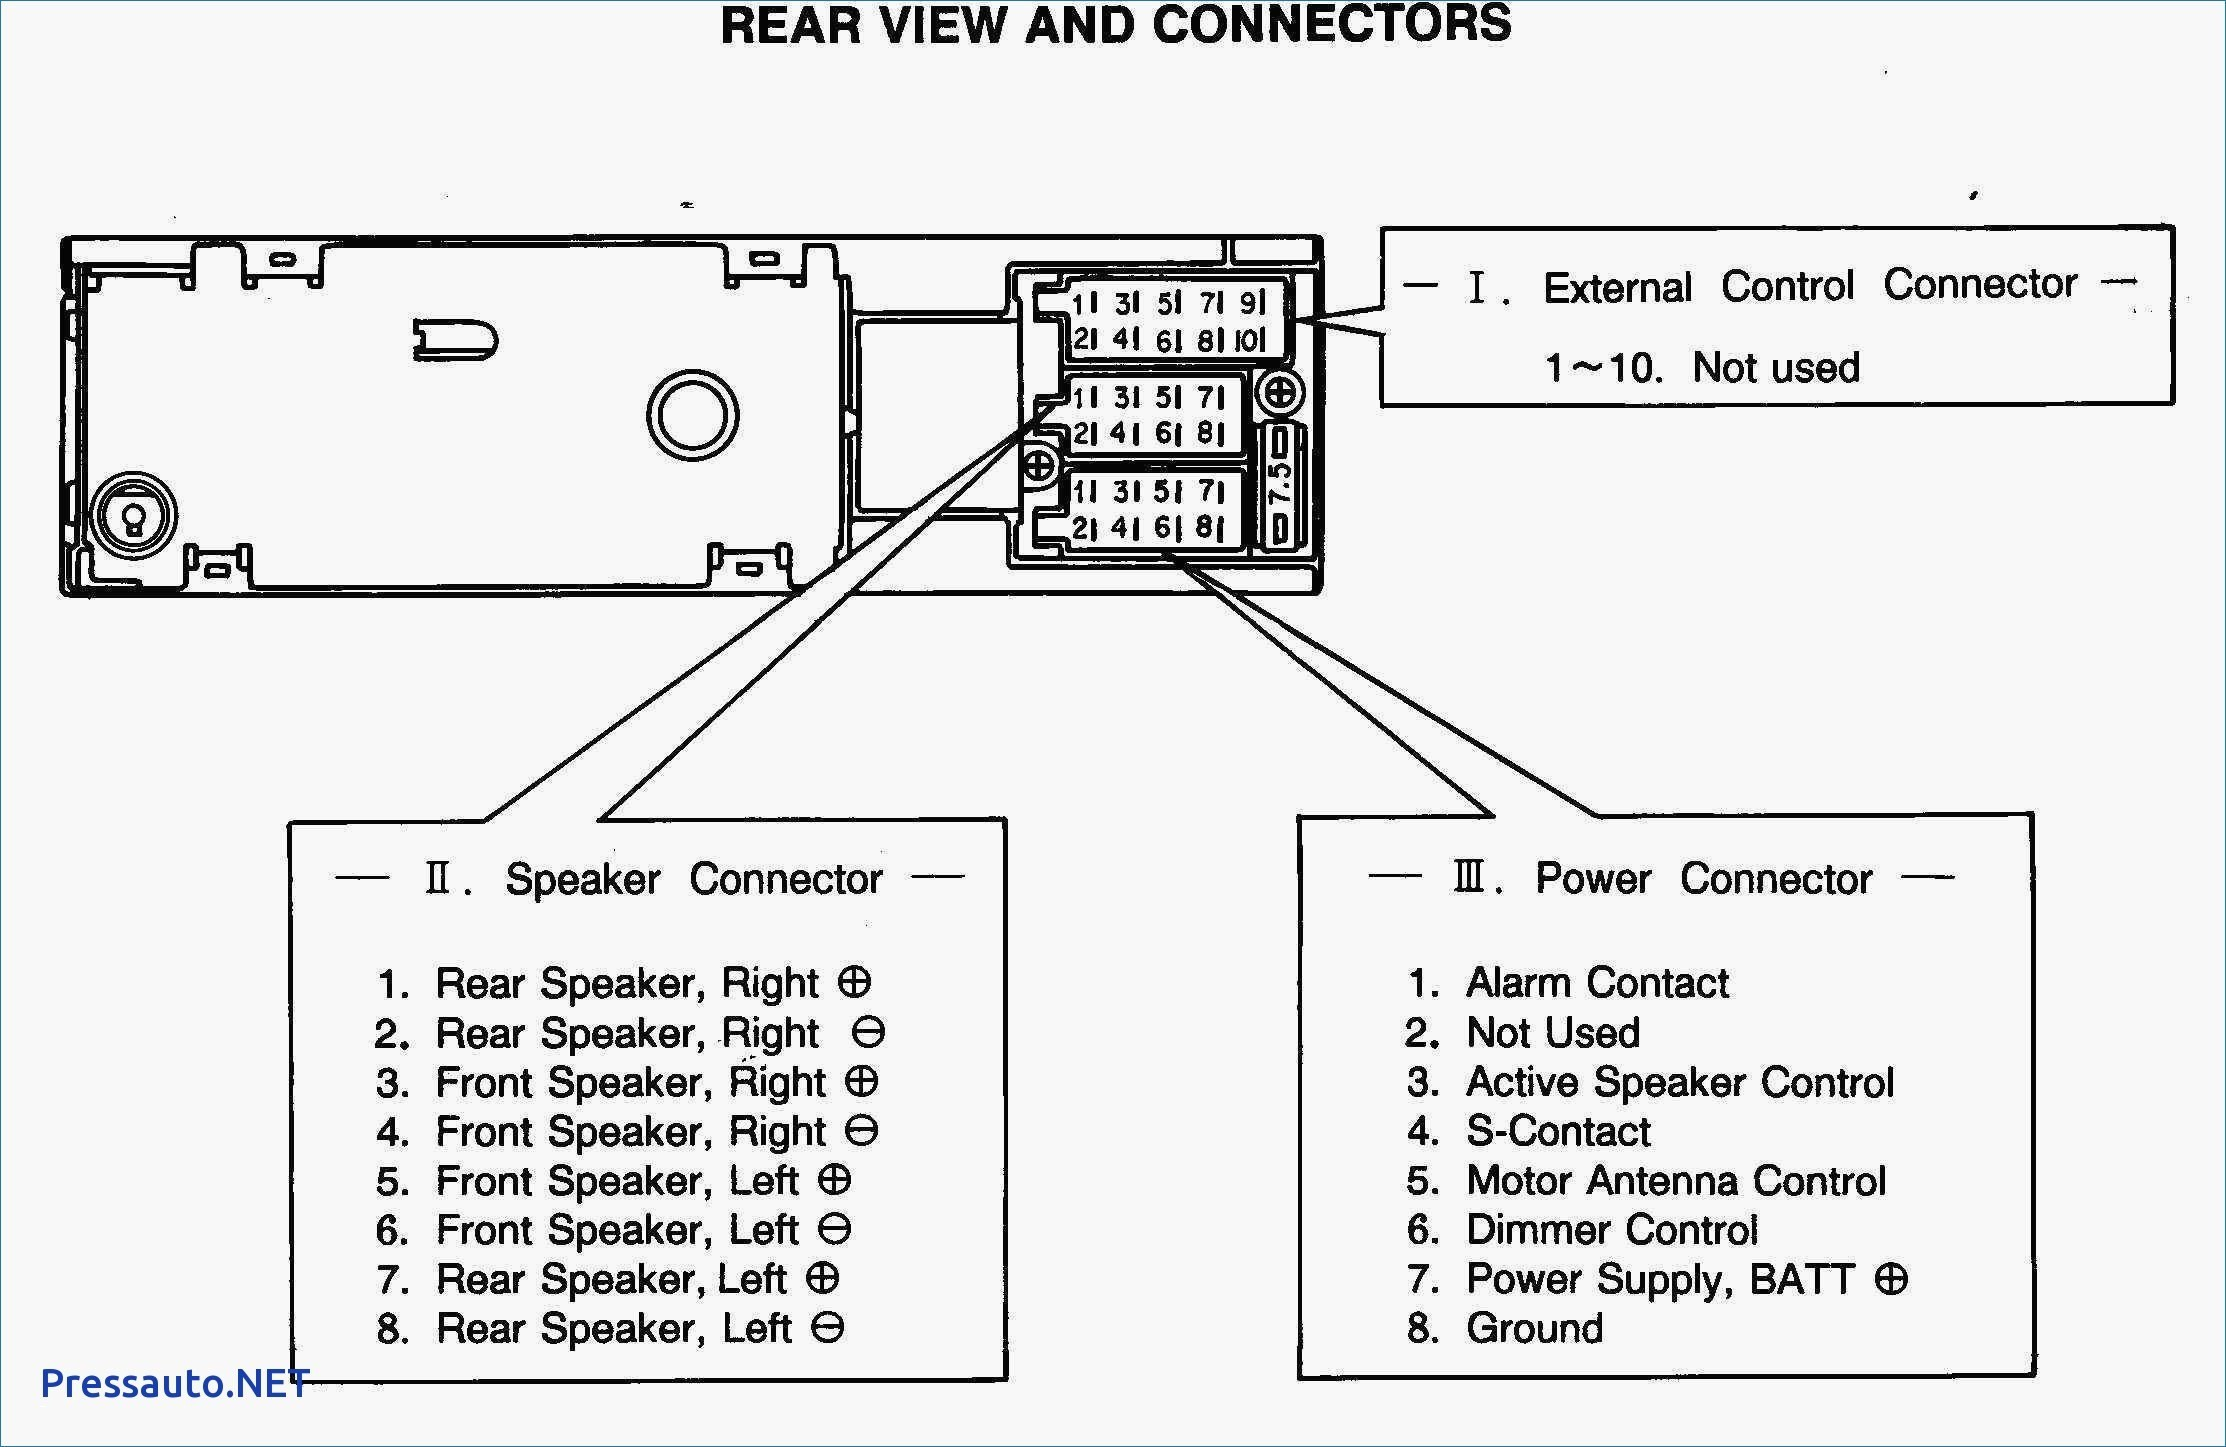 Speaker Wire Diagram for Car Audio Speaker Wire Diagram originalstylophone Of Speaker Wire Diagram for Car Audio